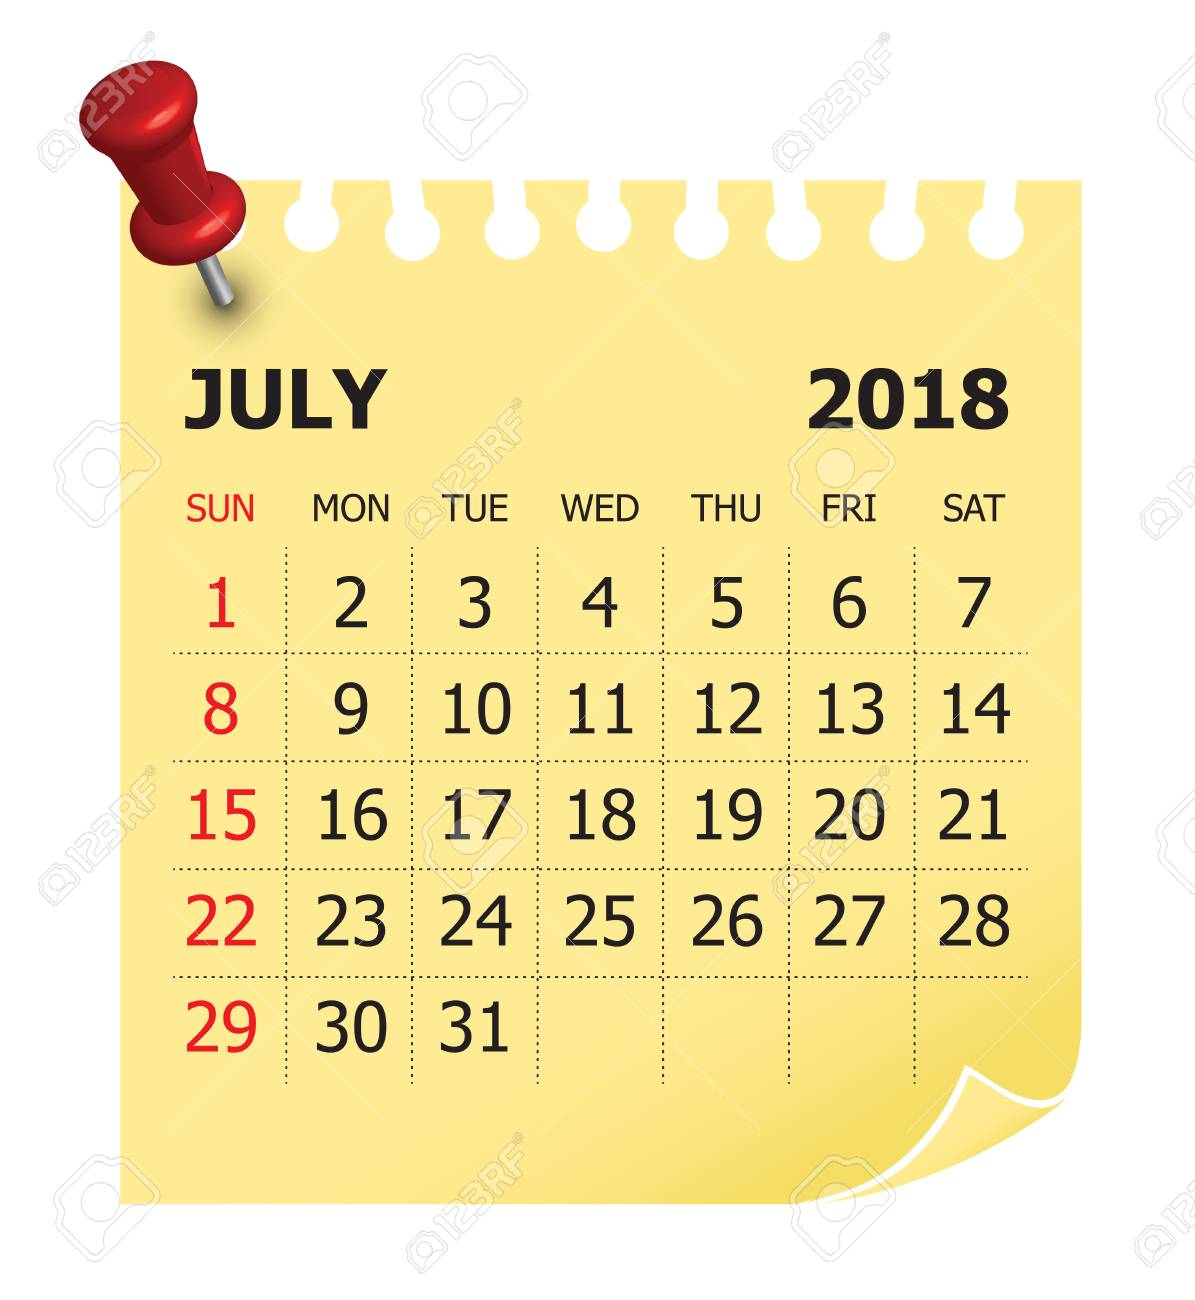 july 2018 calendar vector illustration simple and clean design stock vector 87446136